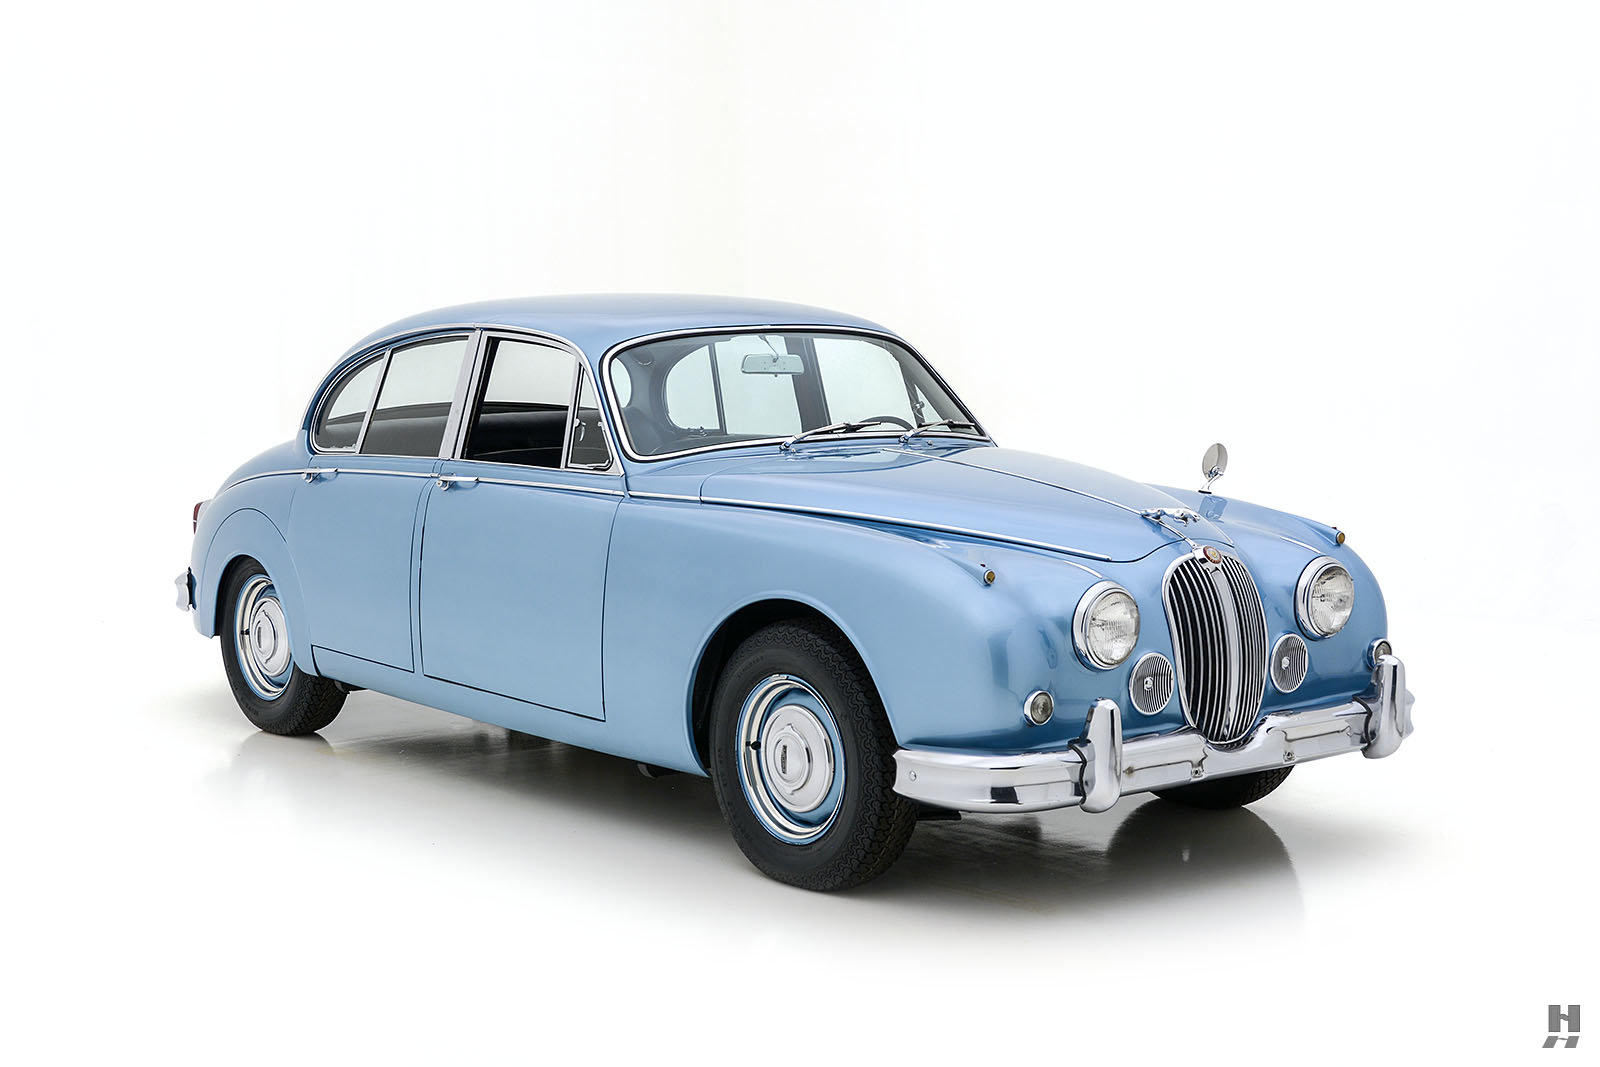 1963 JAGUAR MK II 3.8 SALOON For Sale (picture 2 of 6)